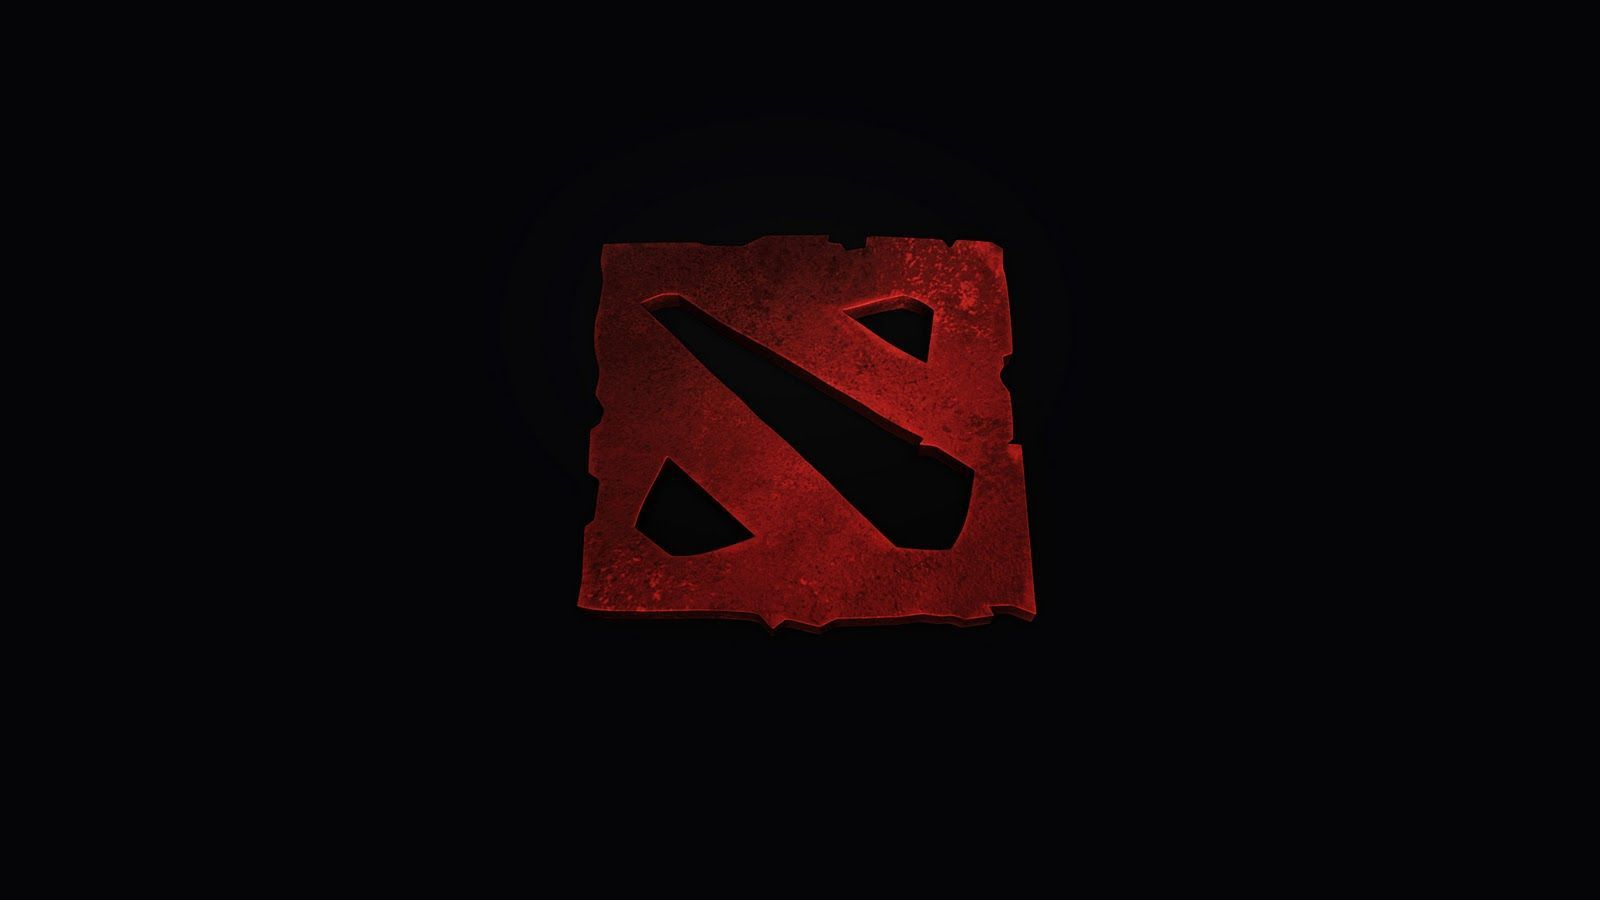 Dota 2 Logo Wallpapers Top Free Dota 2 Logo Backgrounds